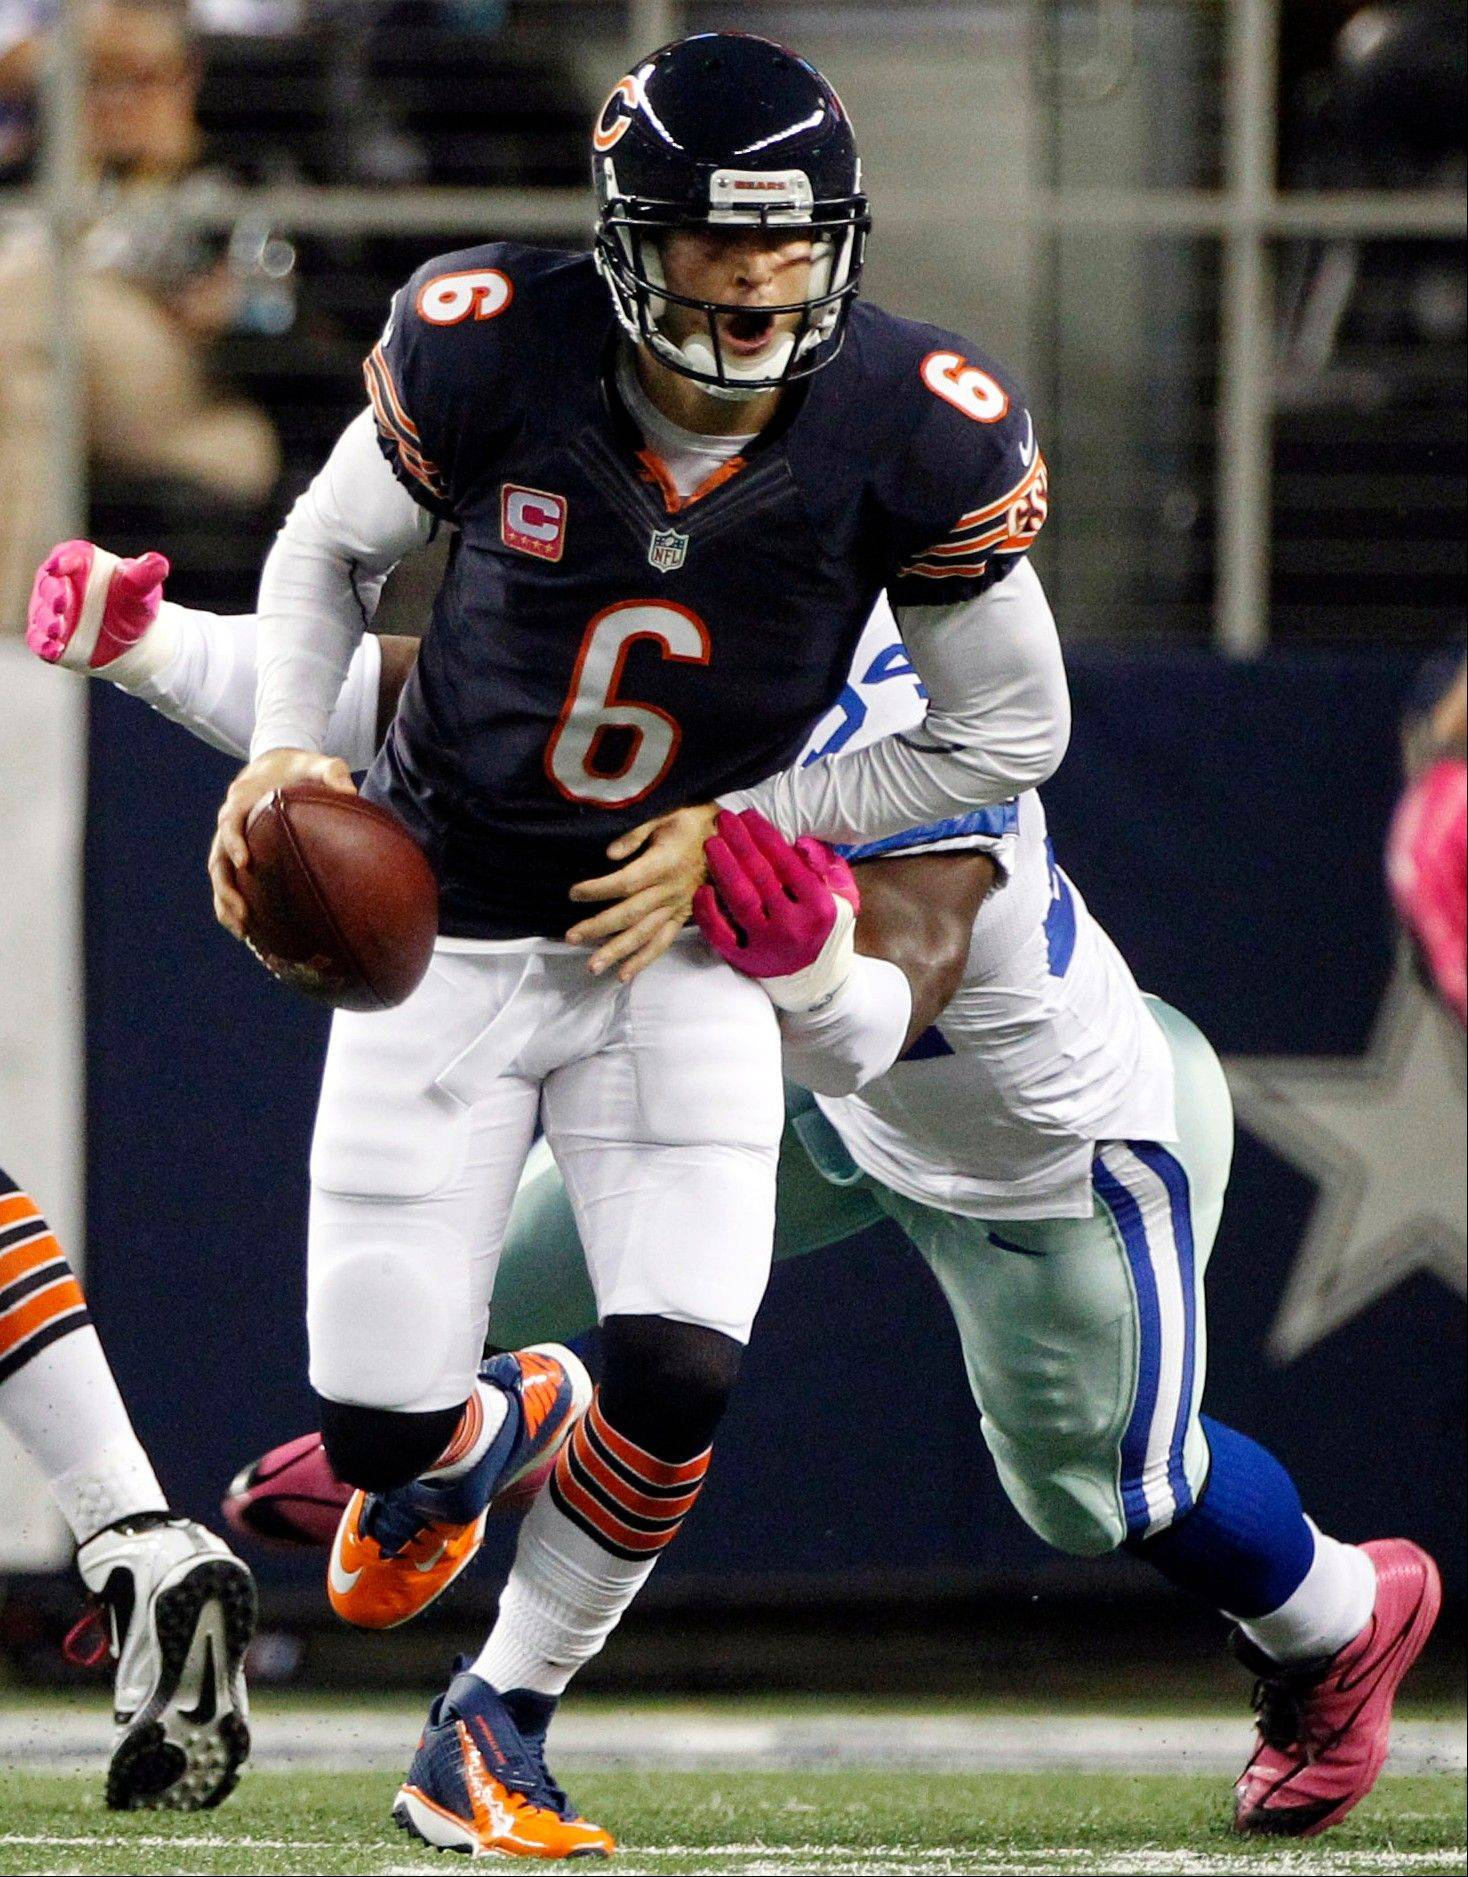 Dallas Cowboys outside linebacker DeMarcus Ware sacks Chicago Bears quarterback Jay Cutler during the first half.